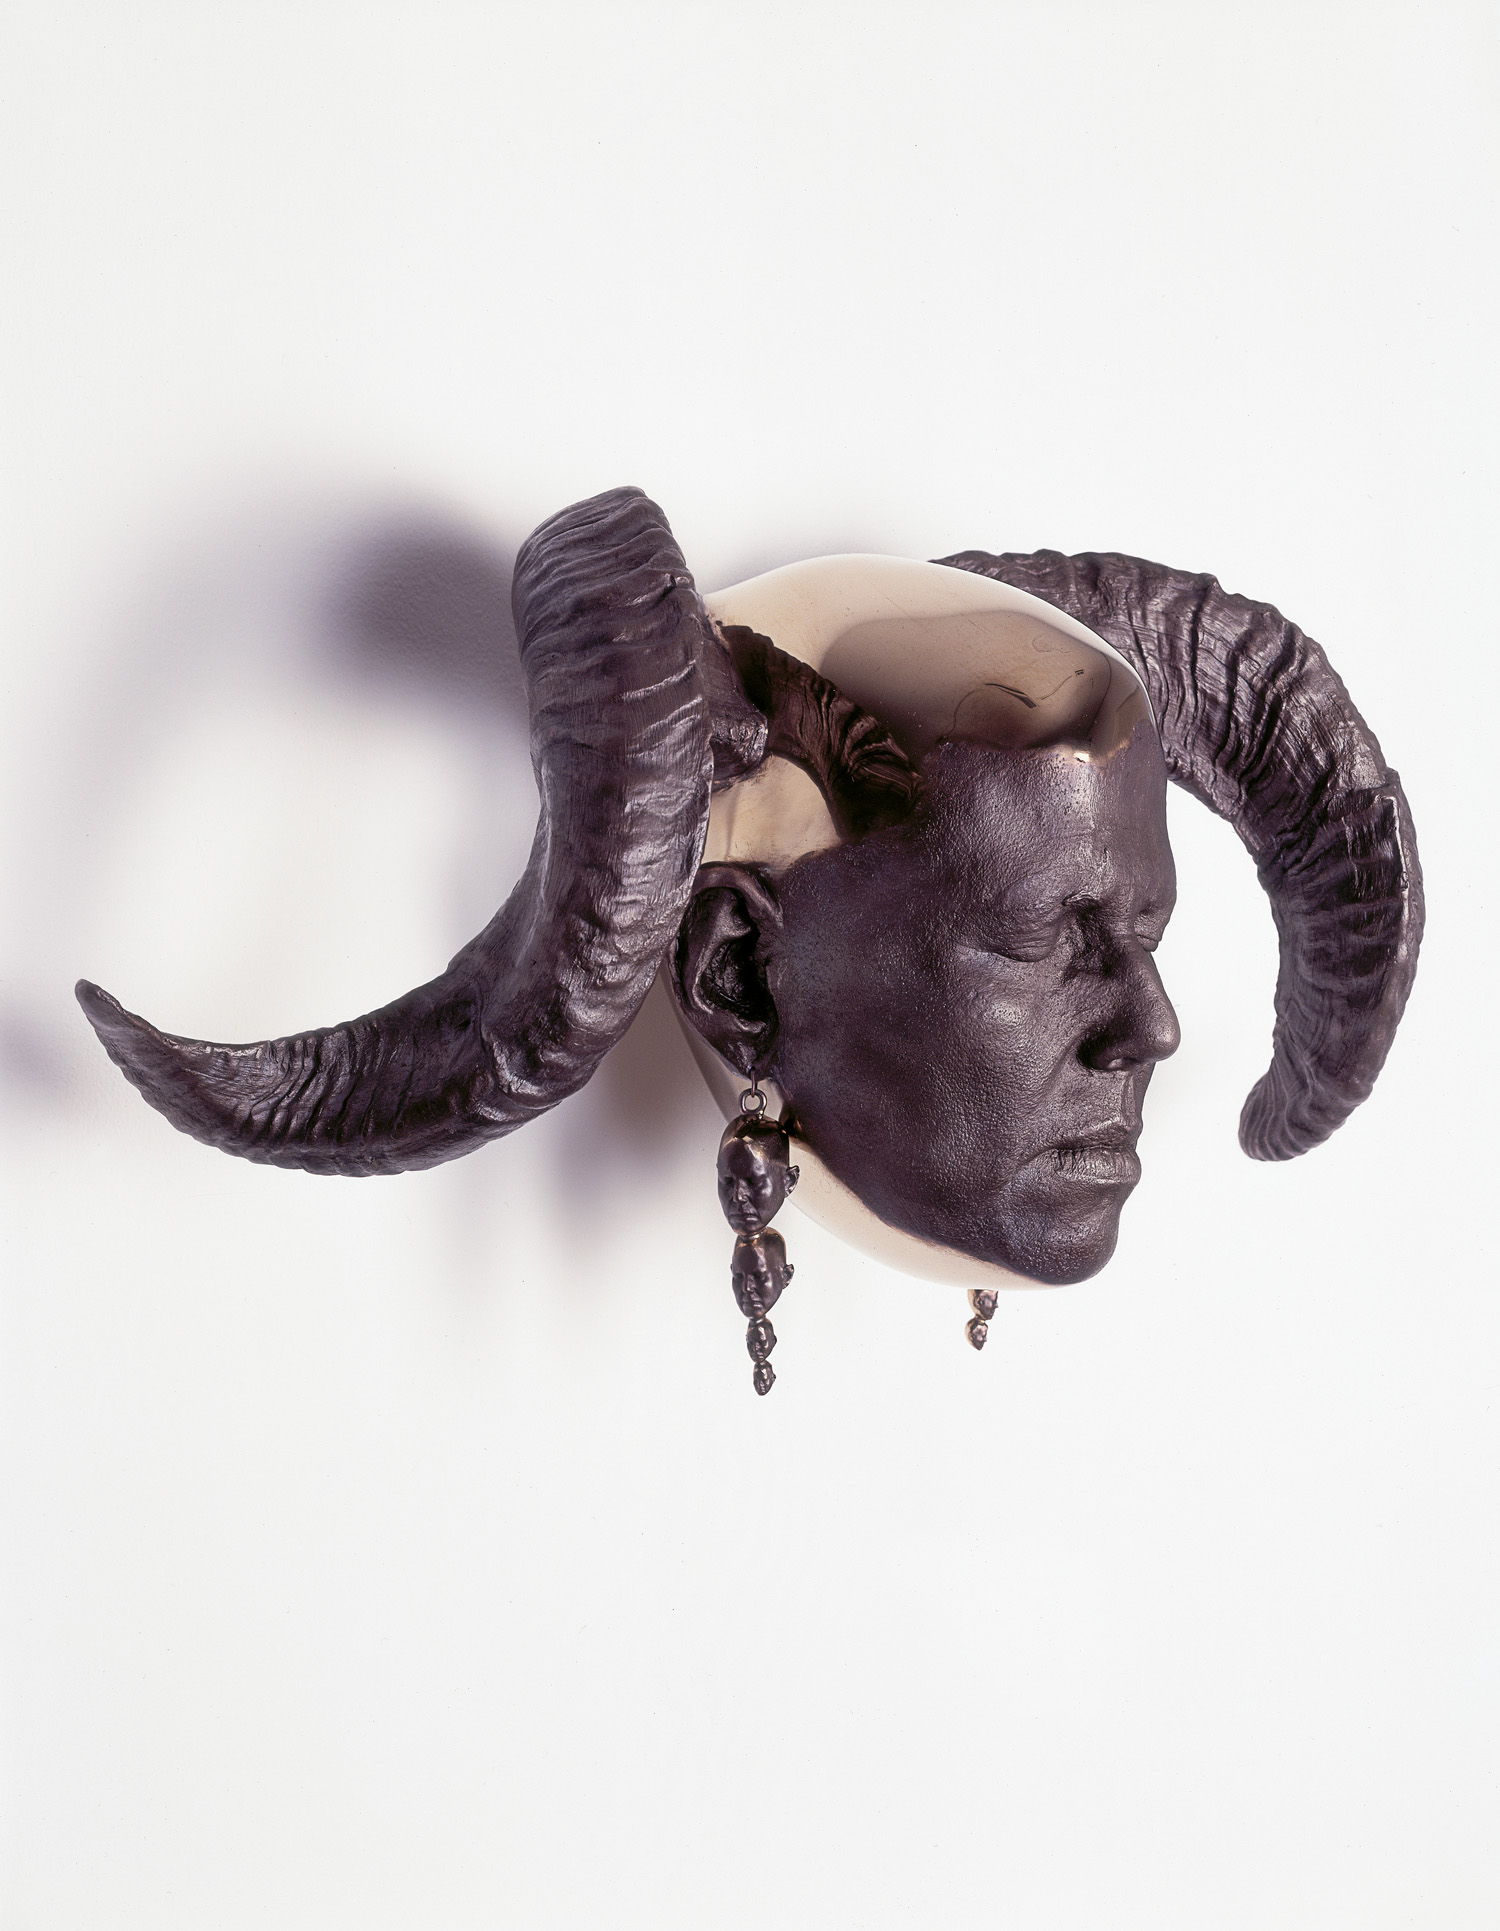 02_rams_head_wall.jpg